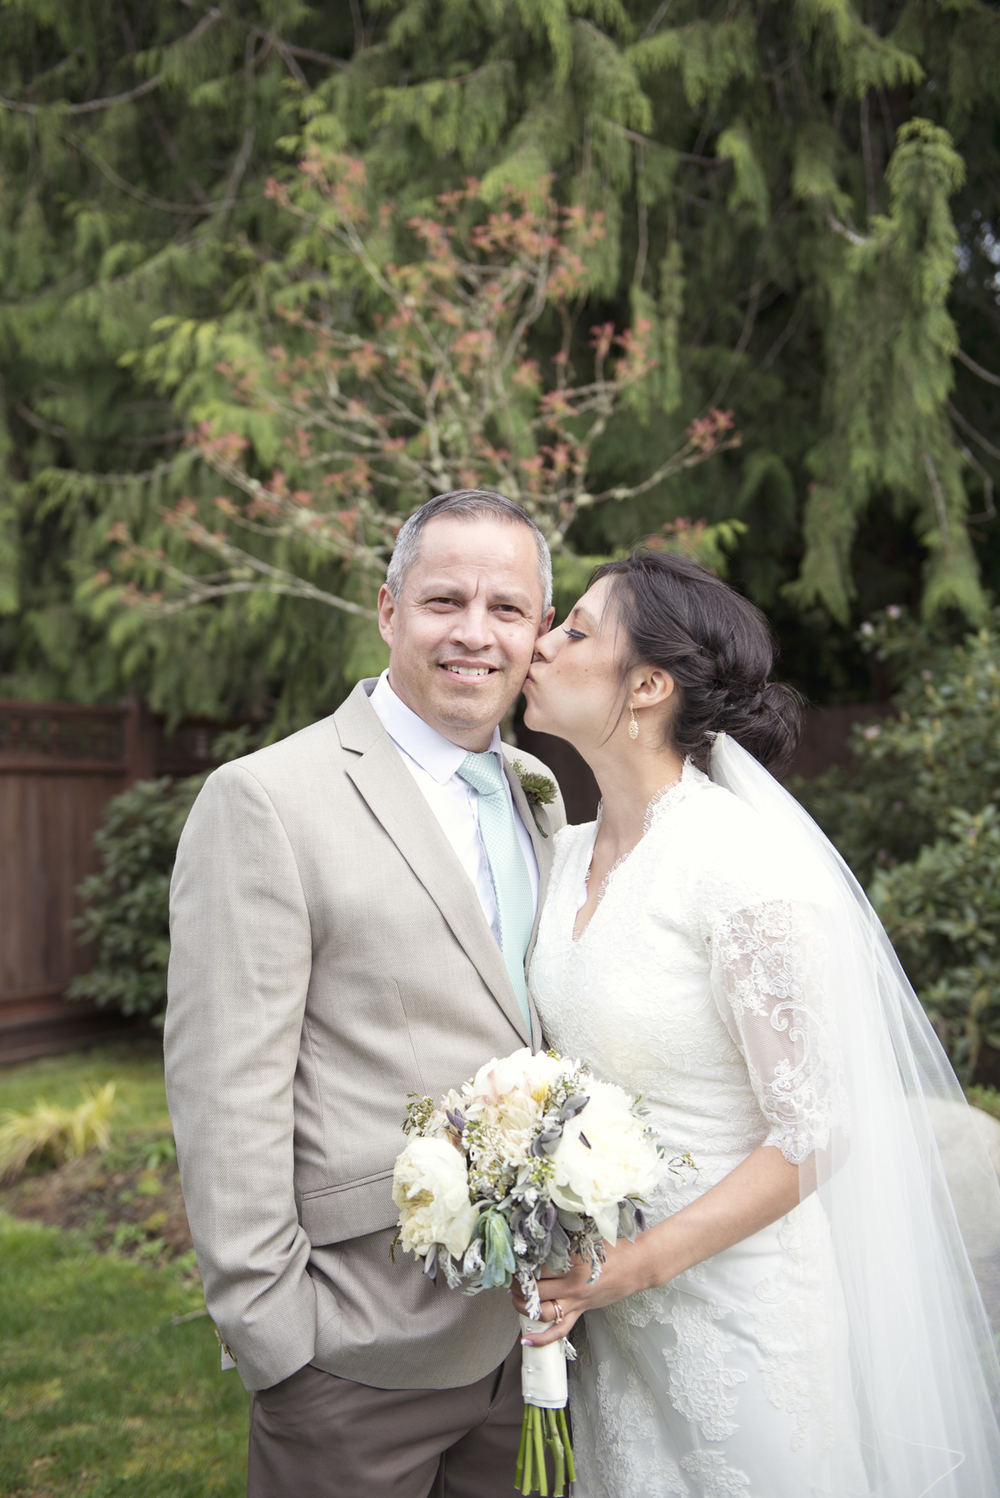 seattleweddingphotography_018.jpg